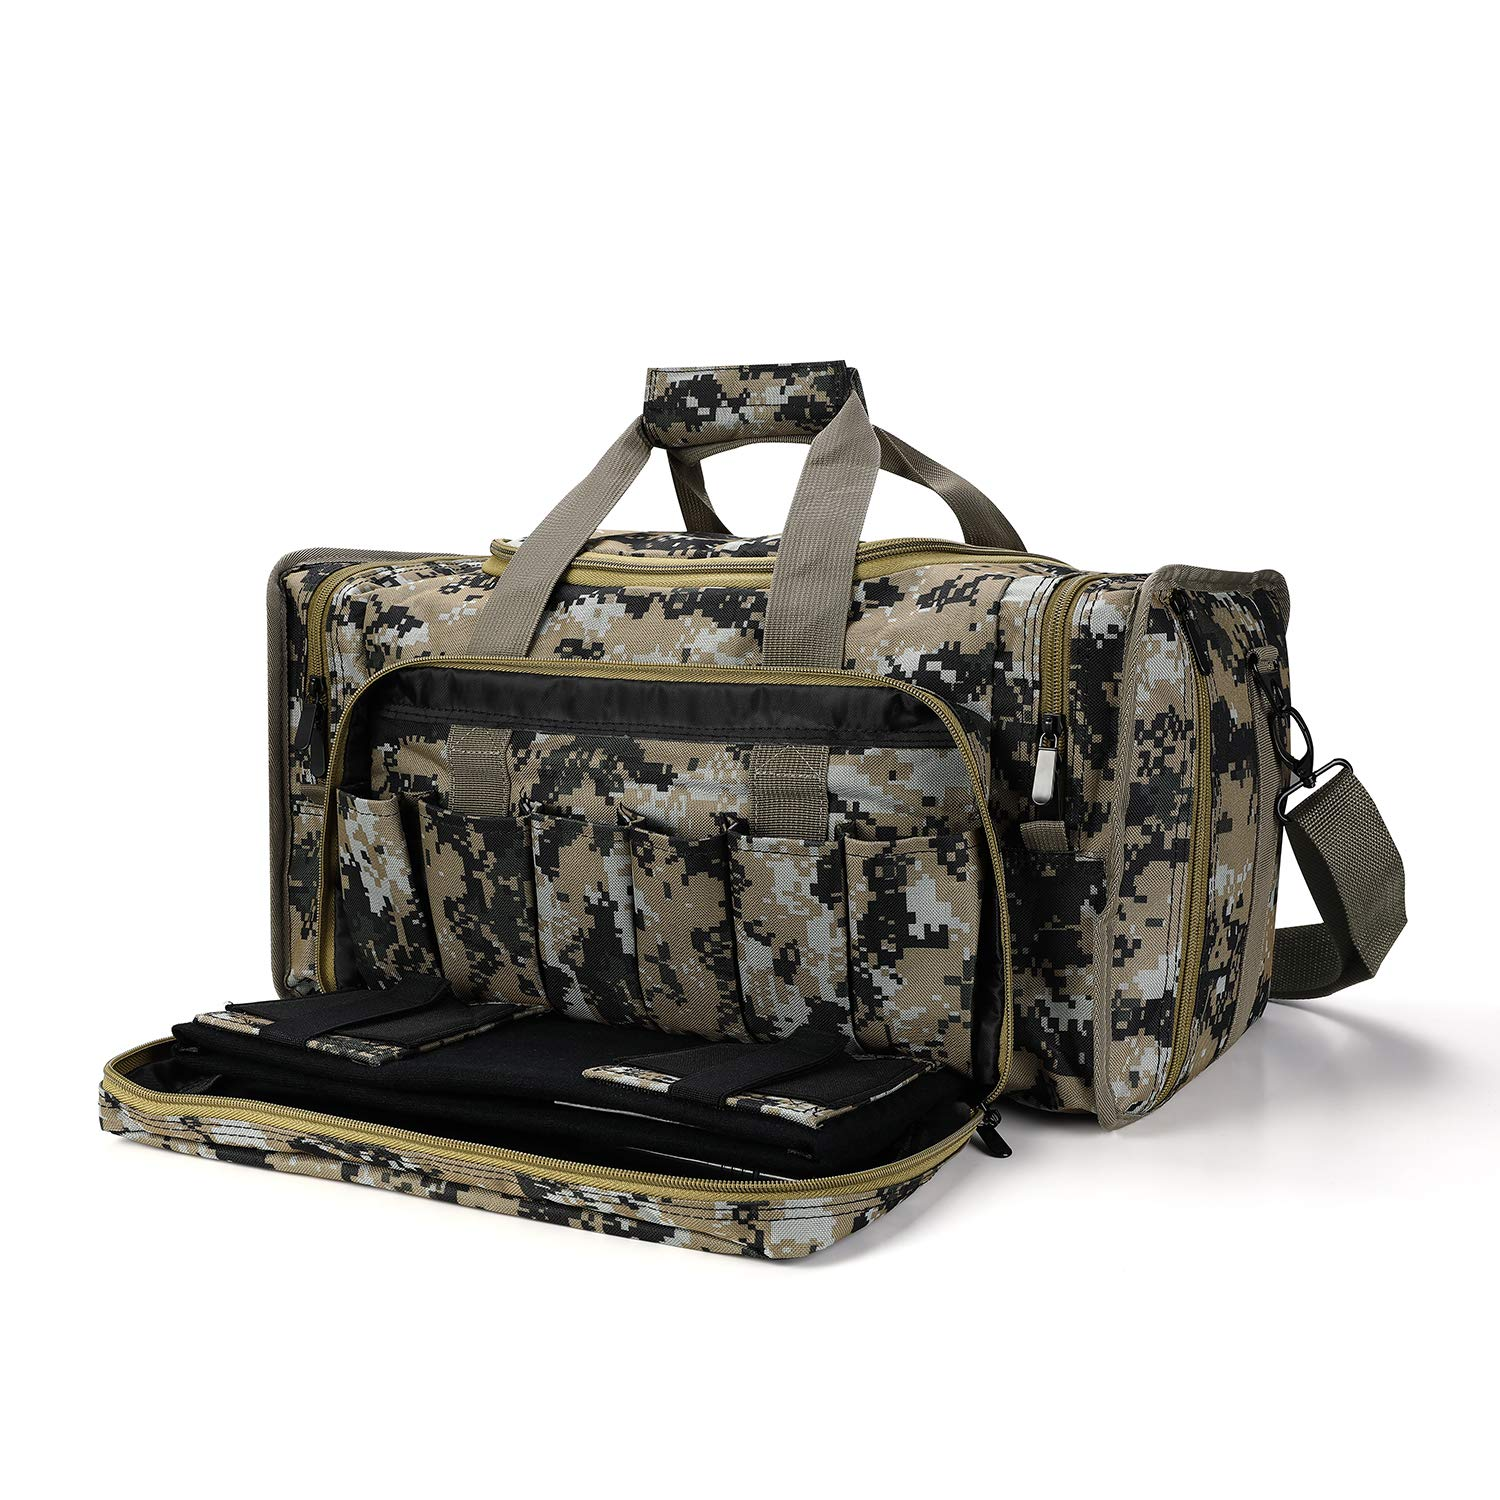 SoarOwl Tactical Gun Range Bag Shooting Duffle Bags for Handguns Pistols with Lockable Zipper and Heavy Duty Antiskid Feet (Camouflage) by SoarOwl